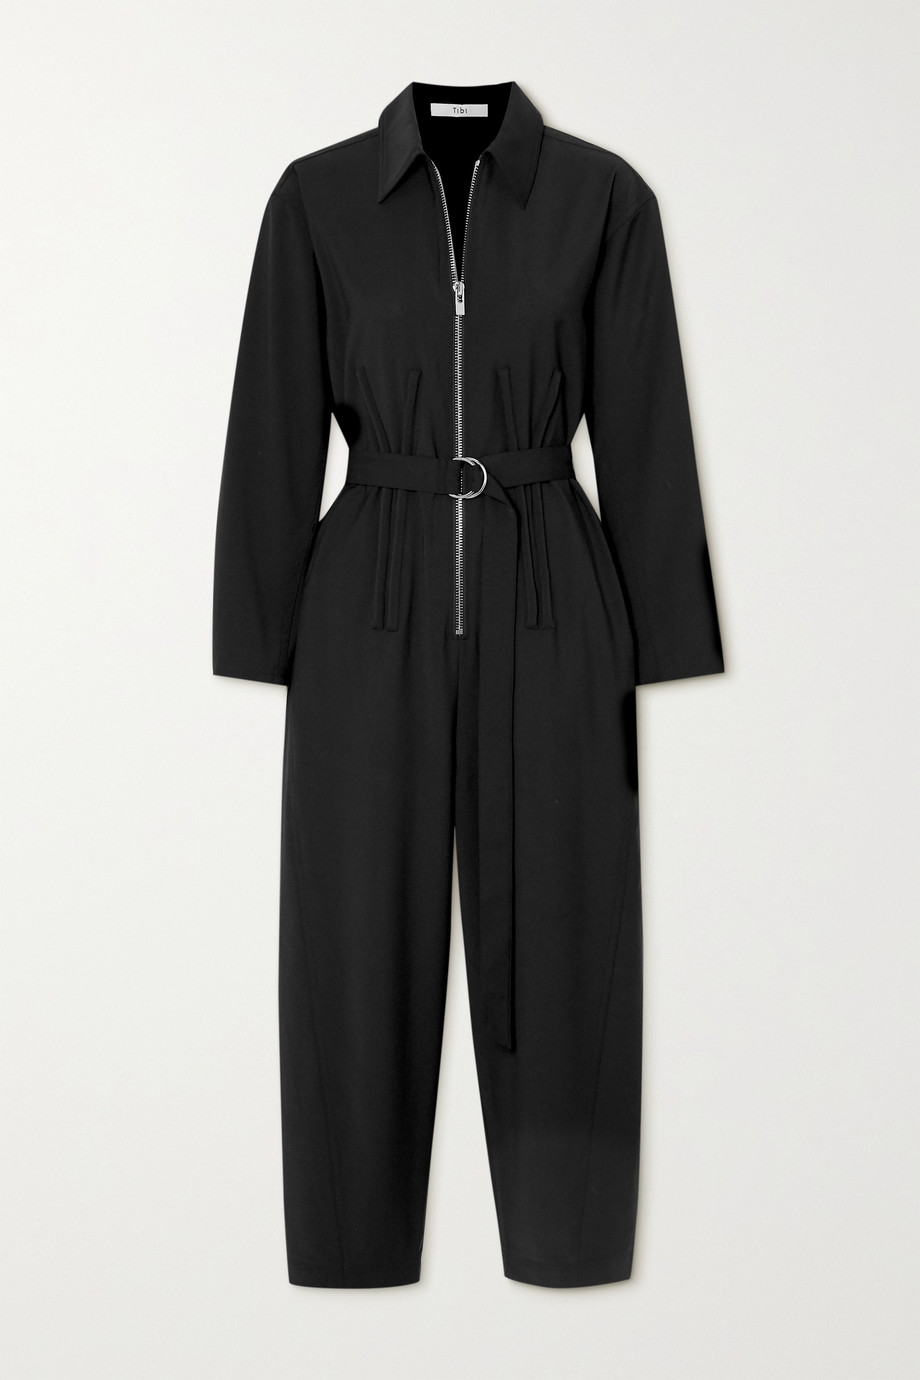 Tibi Cropped belted crepe jumpsuit